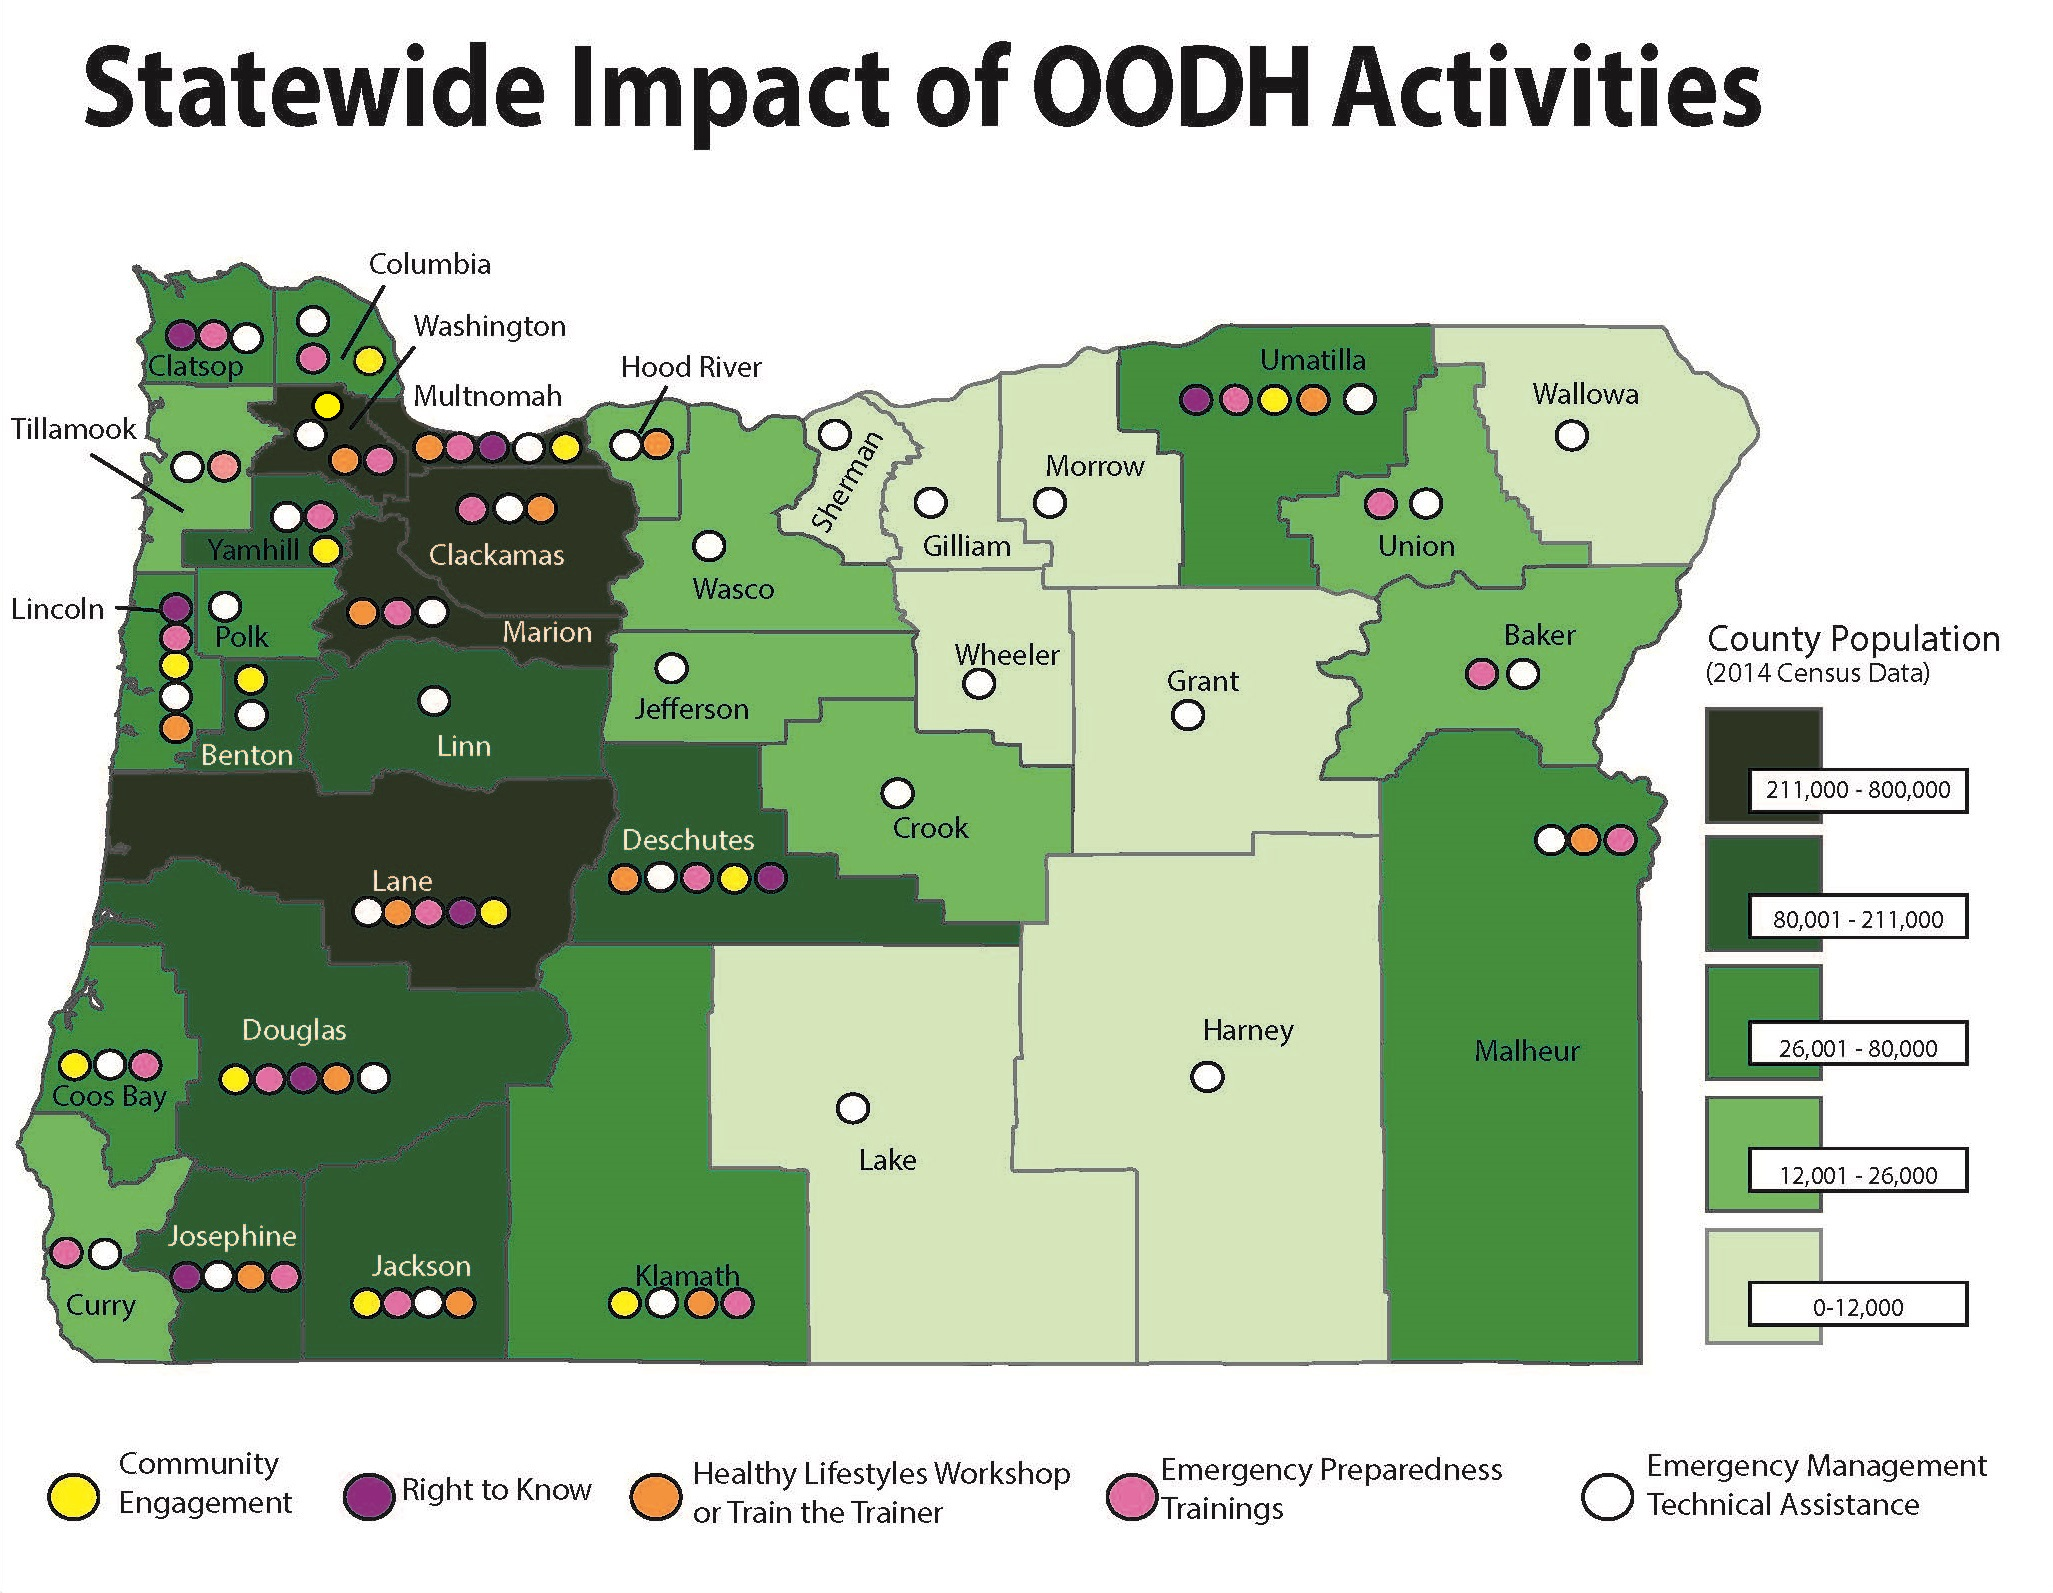 Statewide Impact of OODH Activities